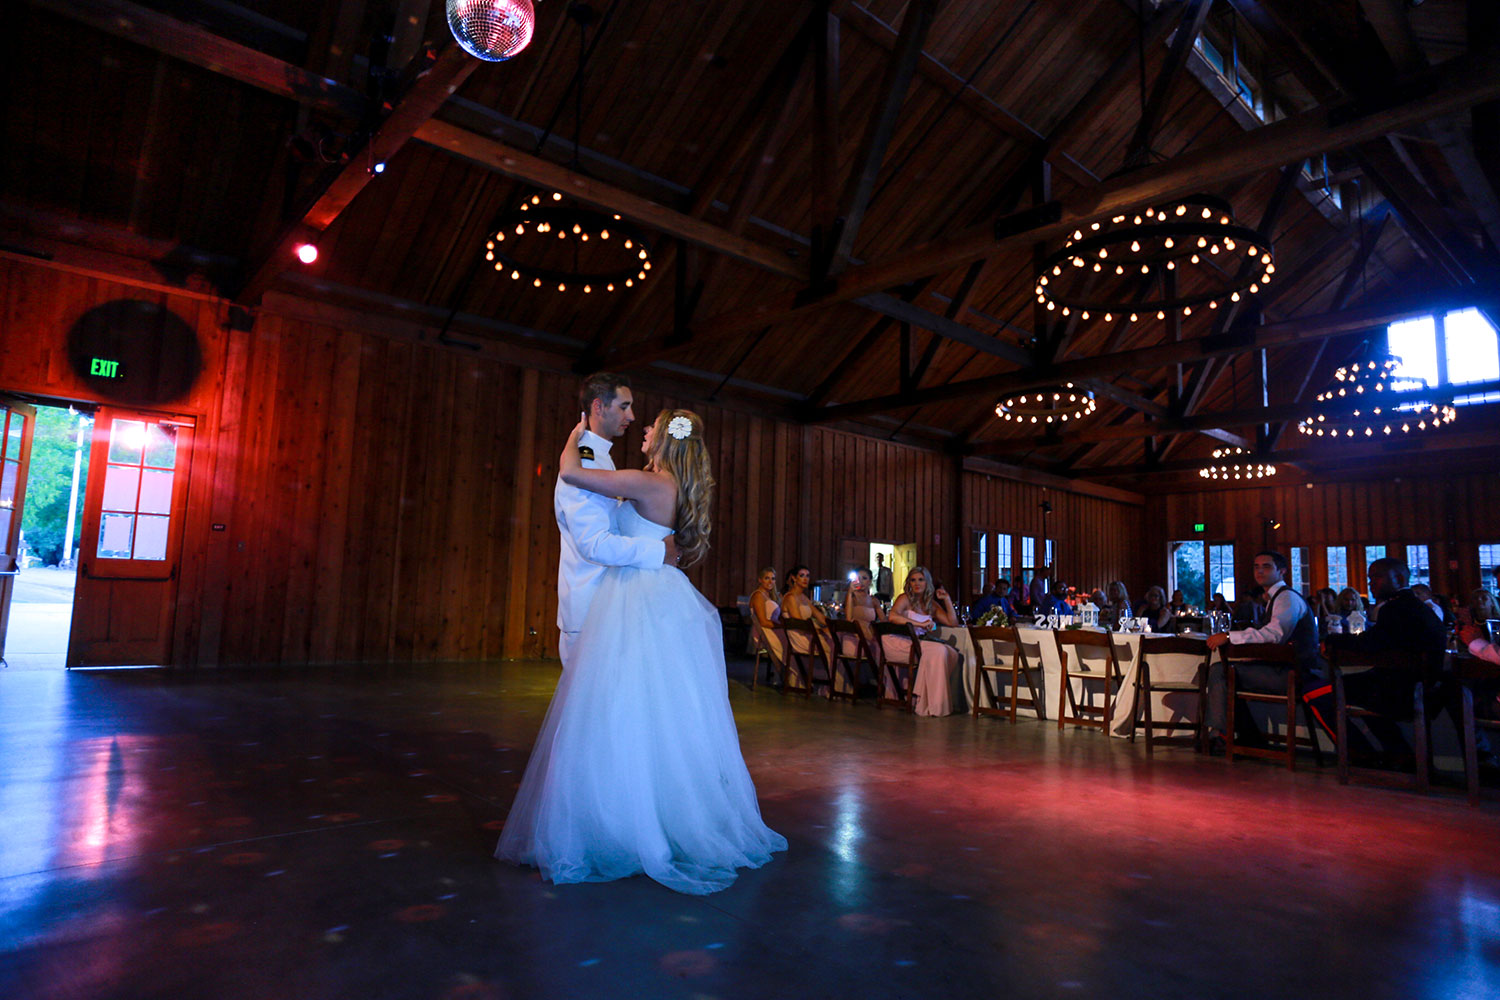 Wedding_Chicago_17.JPG